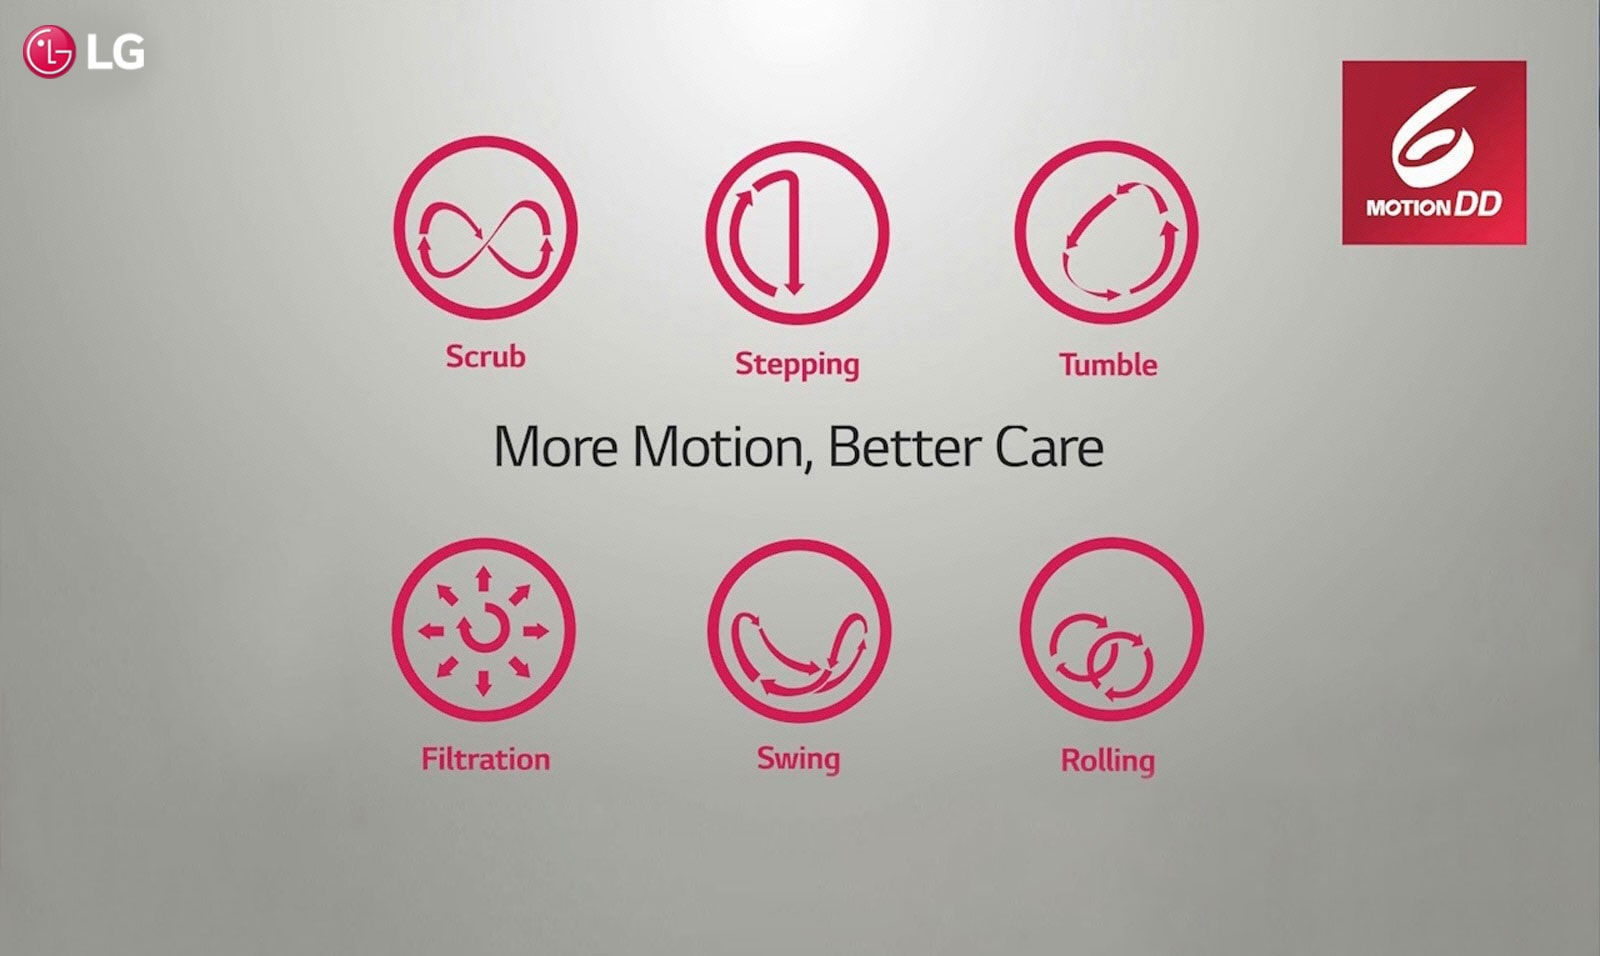 LG FHD0905SWS More Motion Better Care